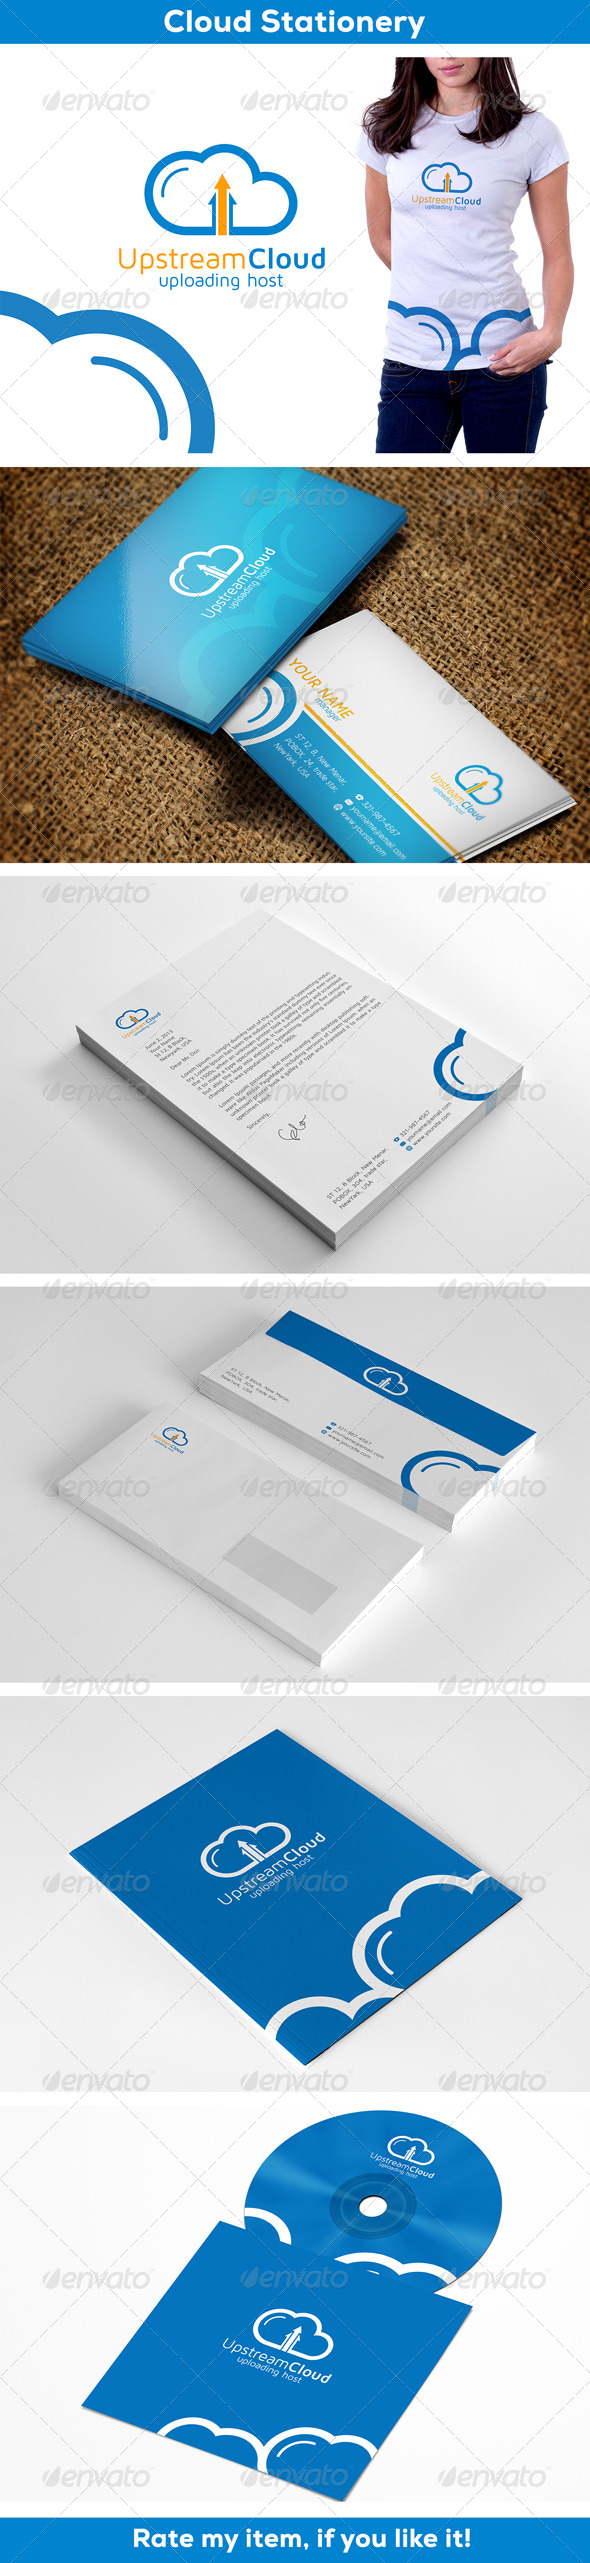 CLoud - Stationery Print Templates